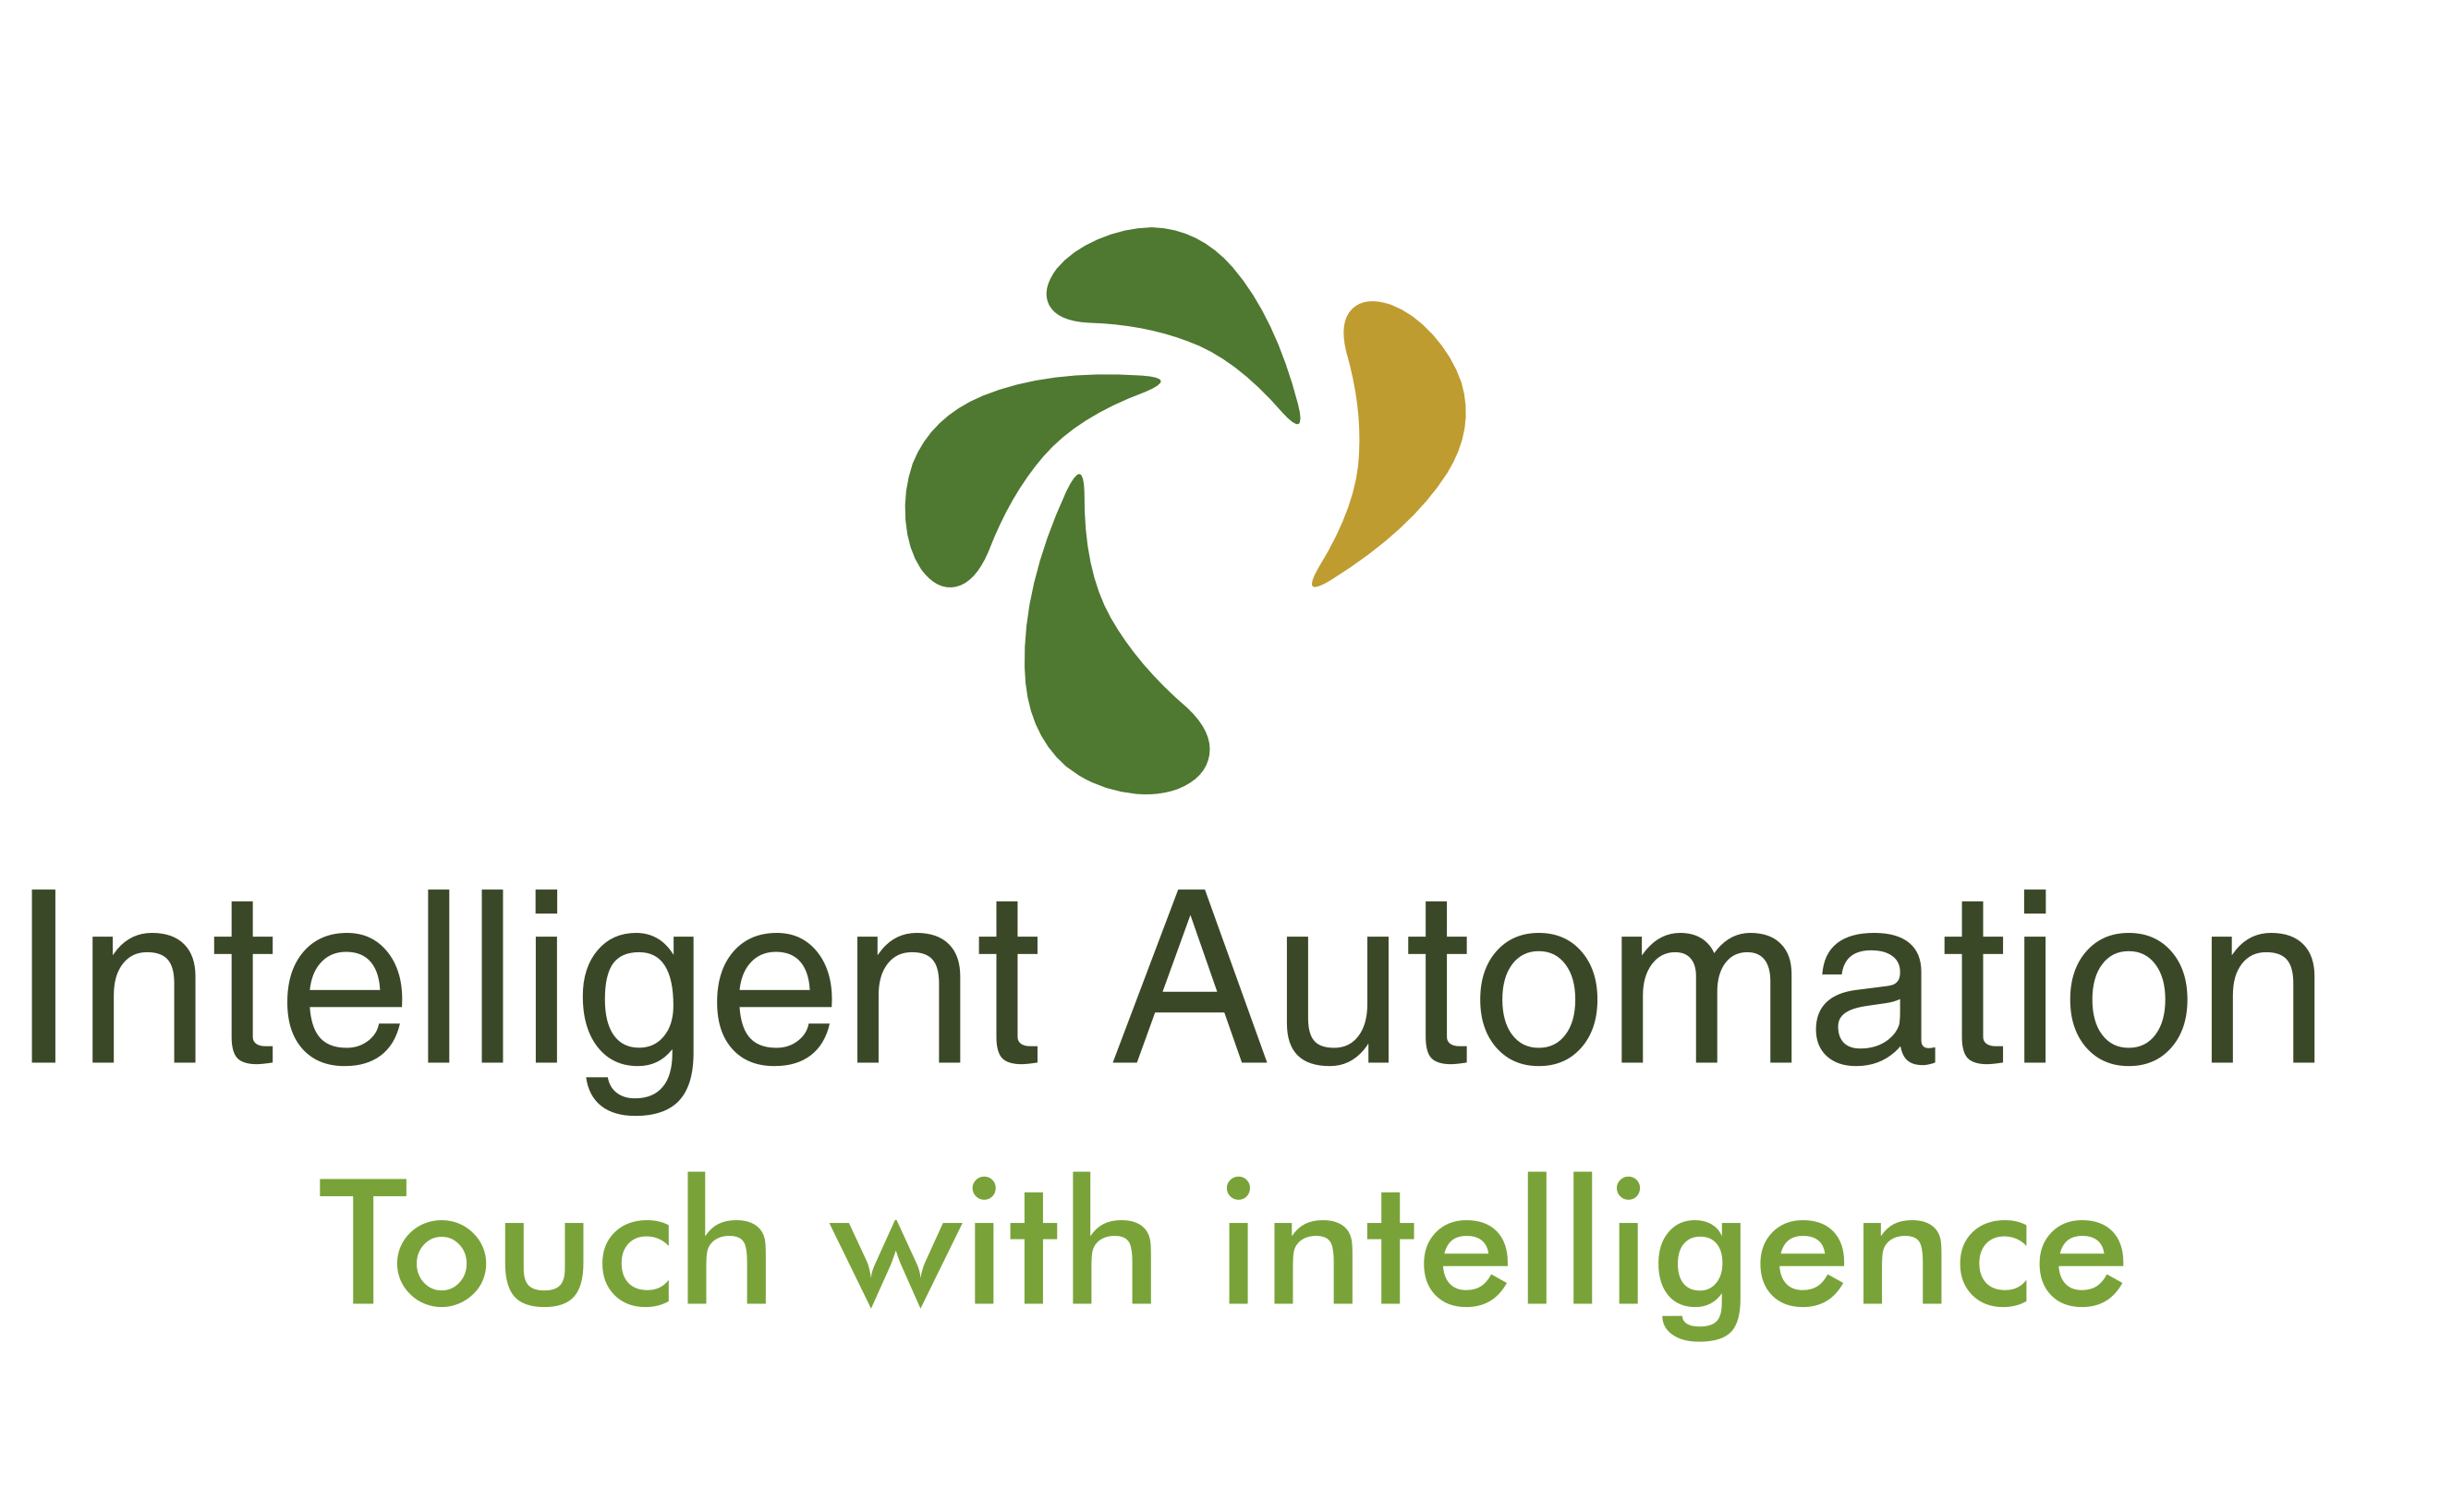 Intelligent Automation Logo